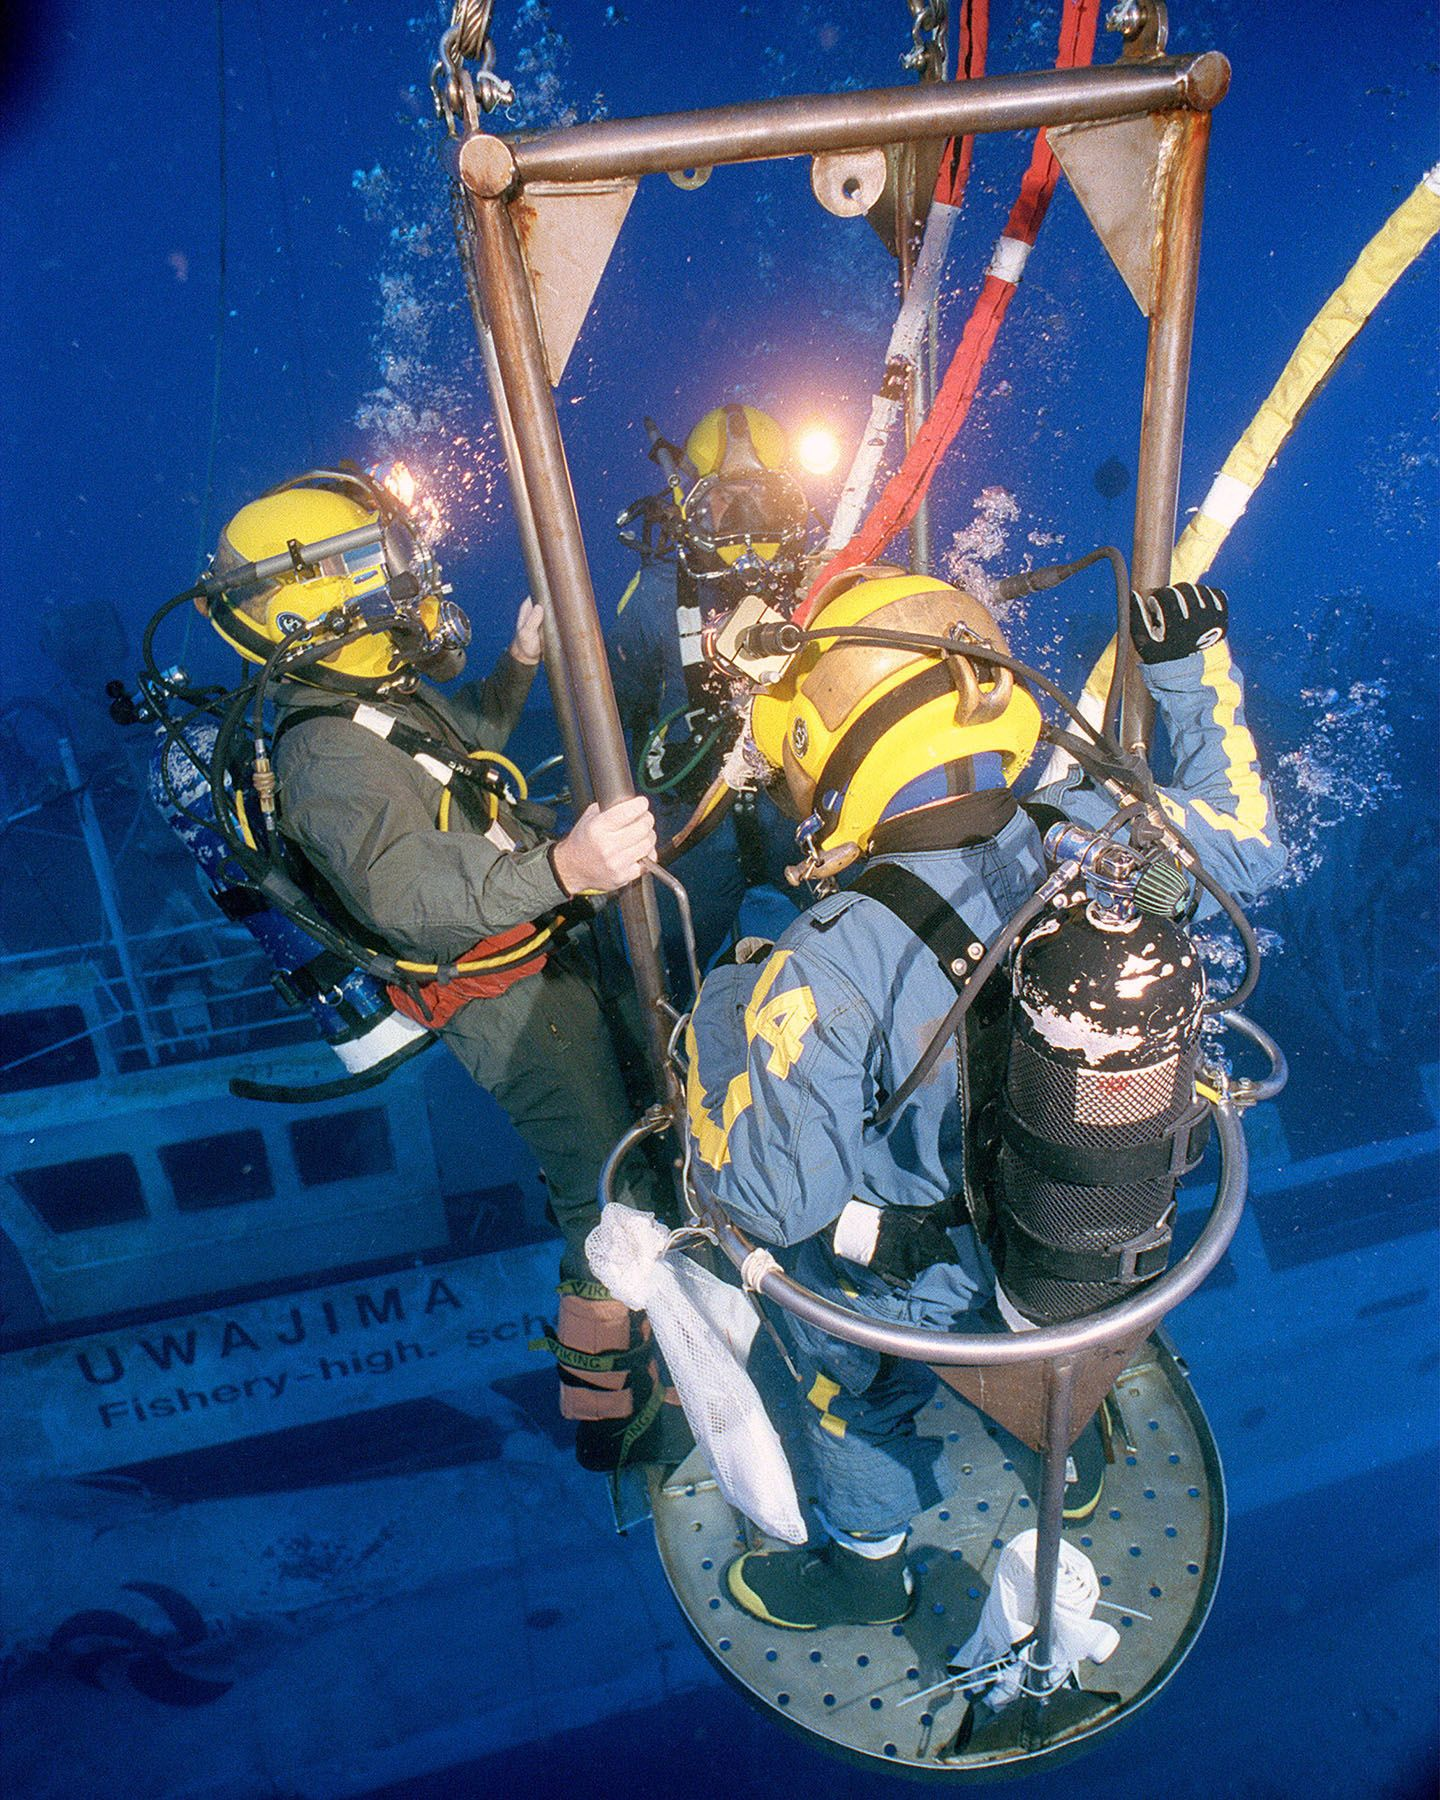 Commercial divers diving pinterest commercial for Naval diving unit